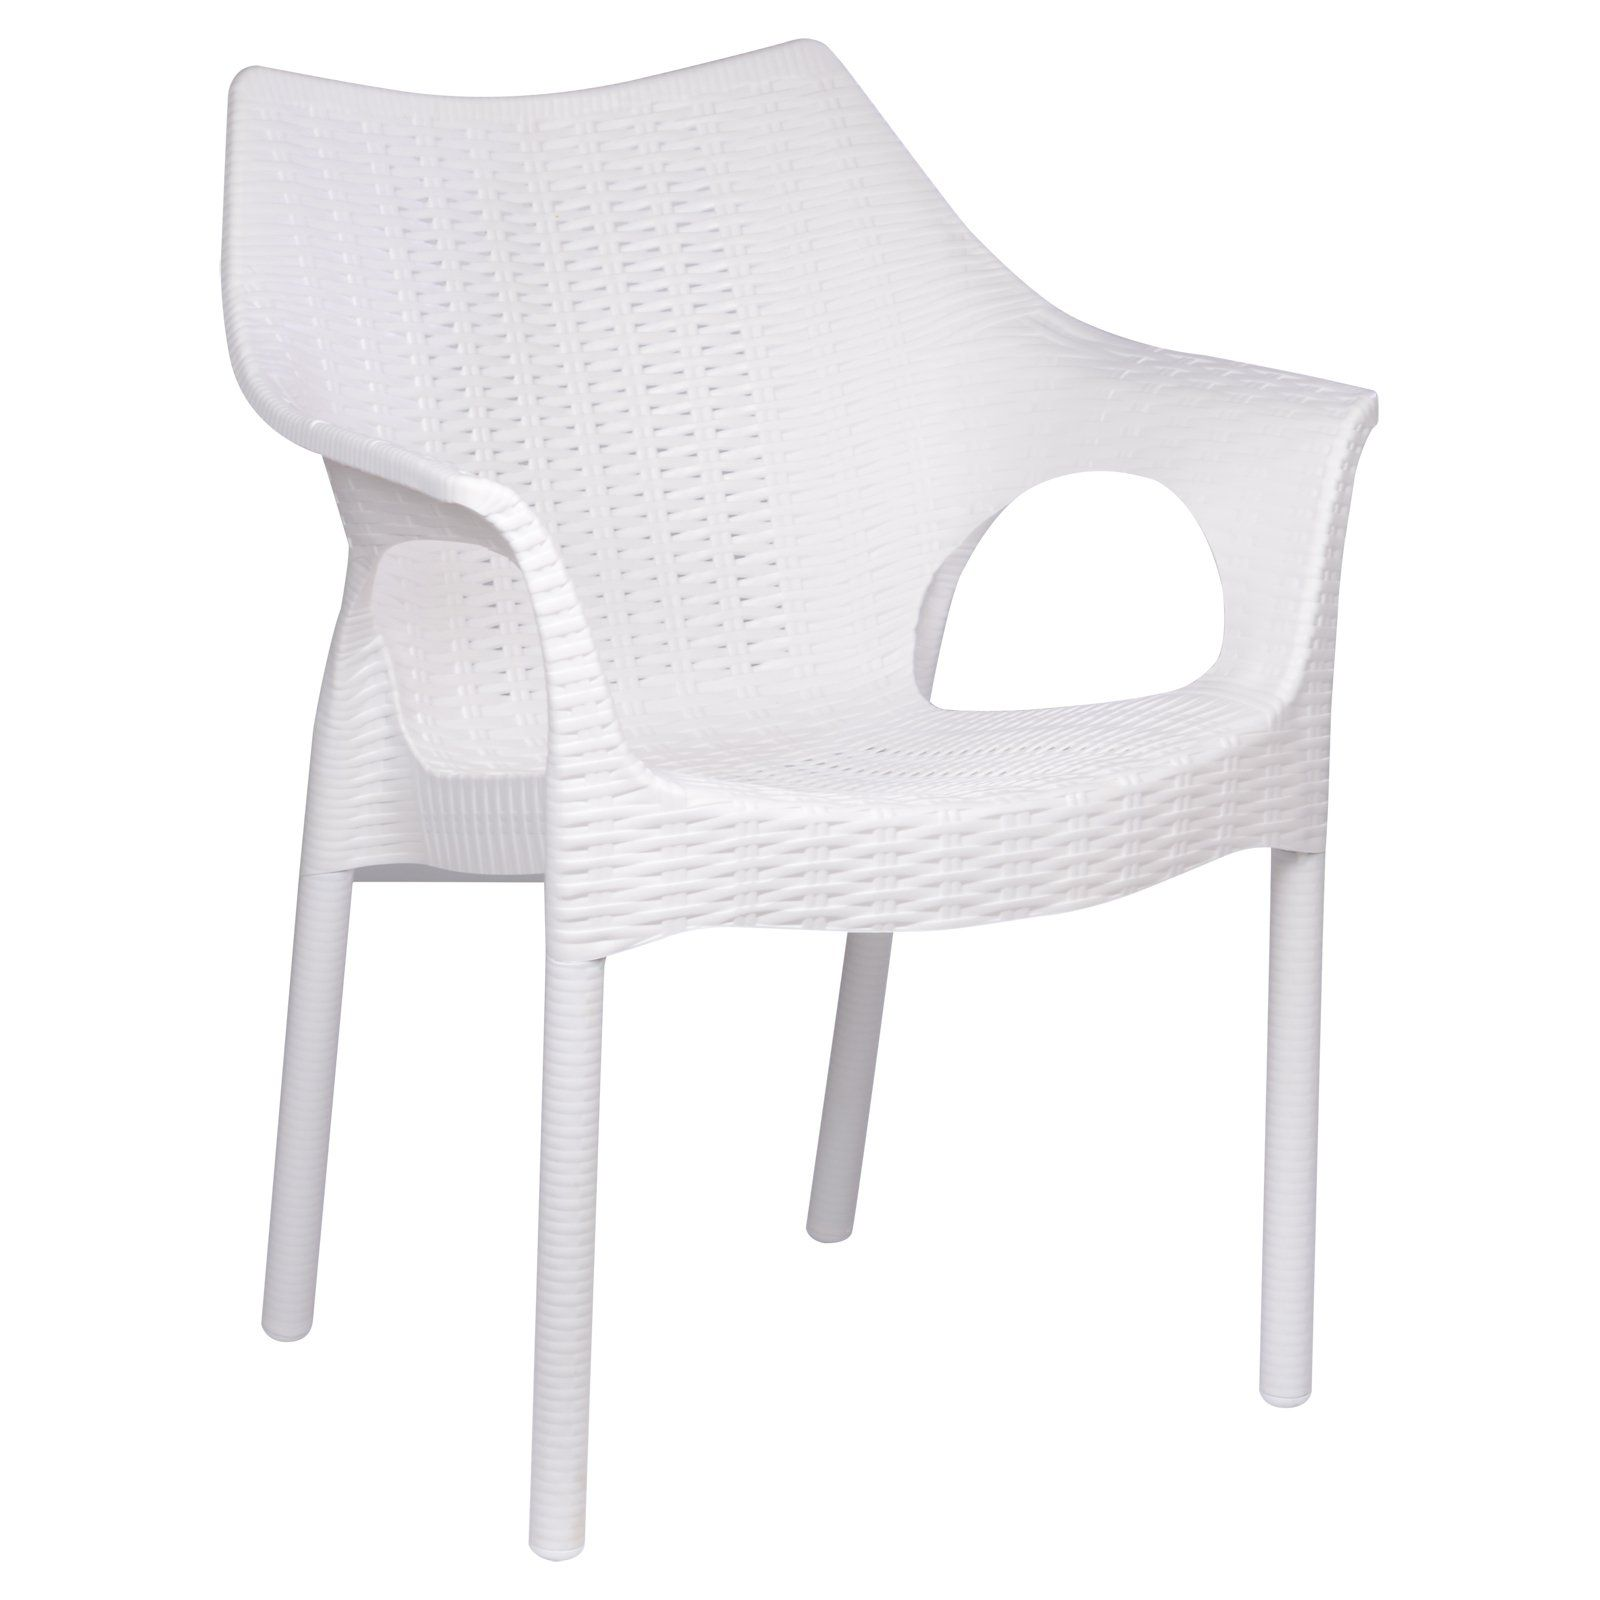 Stratta Accent Chair: Outdoor Strata Furniture Carina Weatherproof Patio Dining